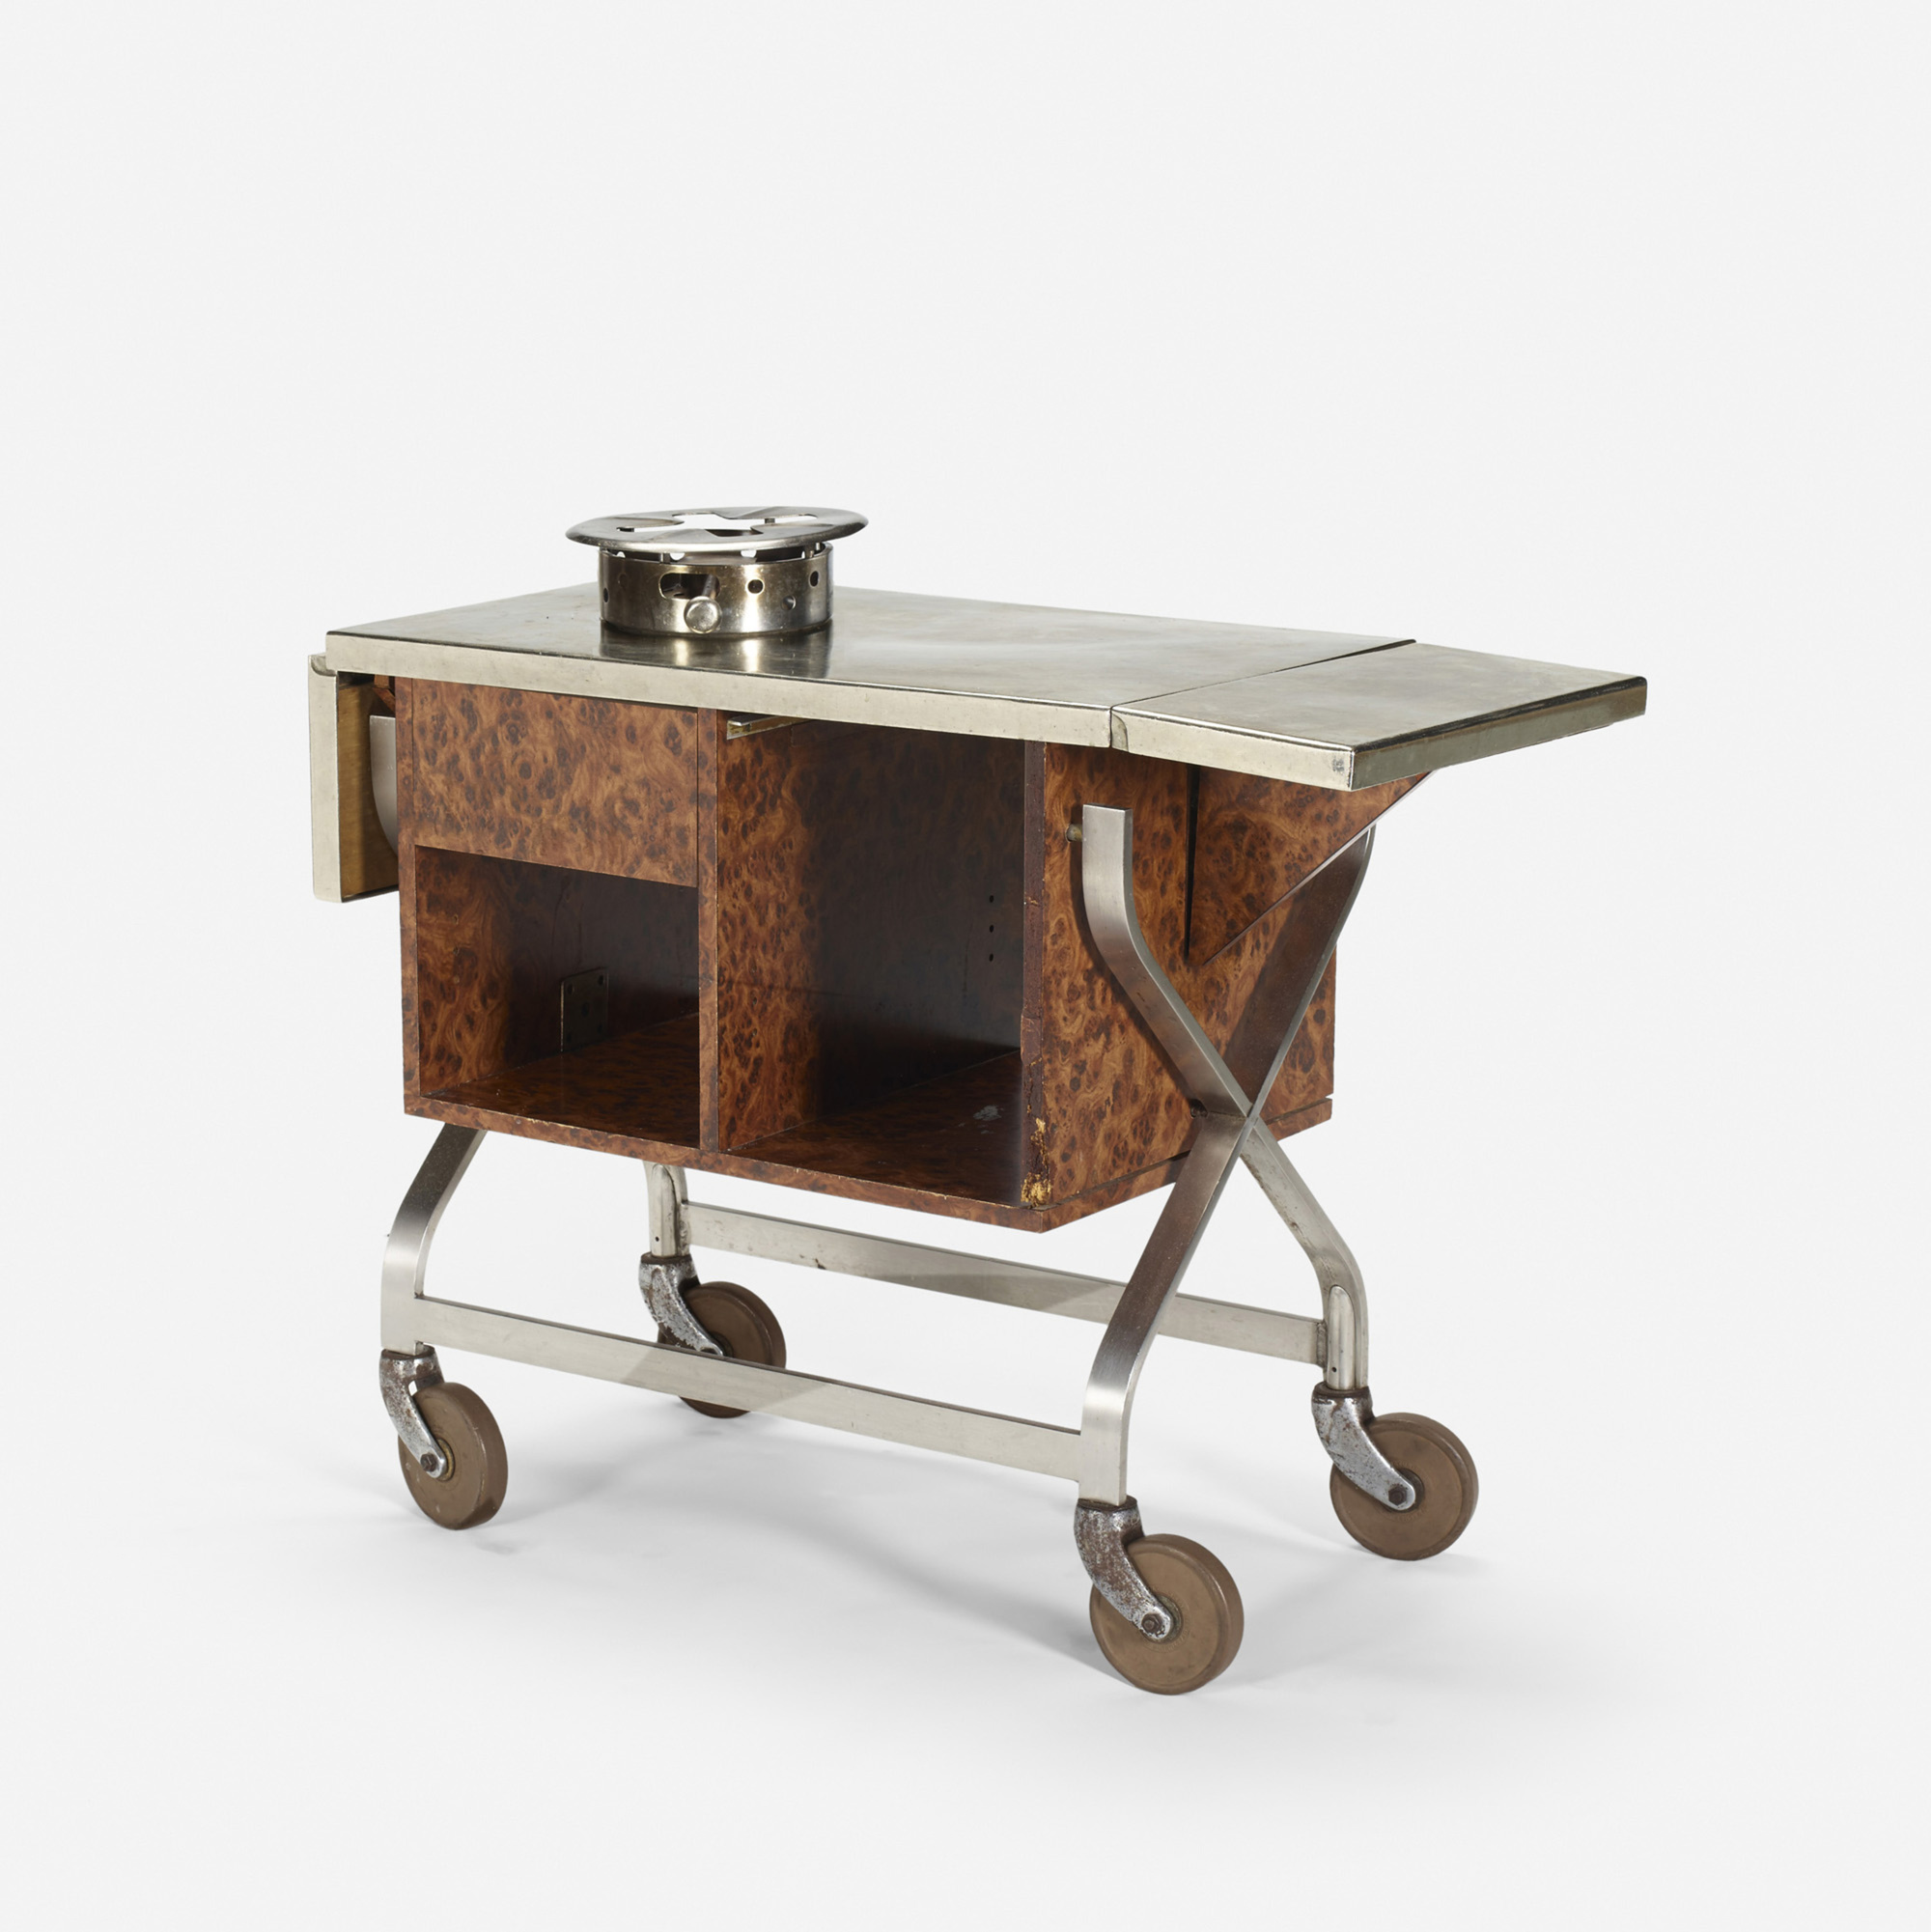 297: Garth and Ada Louise Huxtable / Serving cart from The Four Seasons (1 of 1)